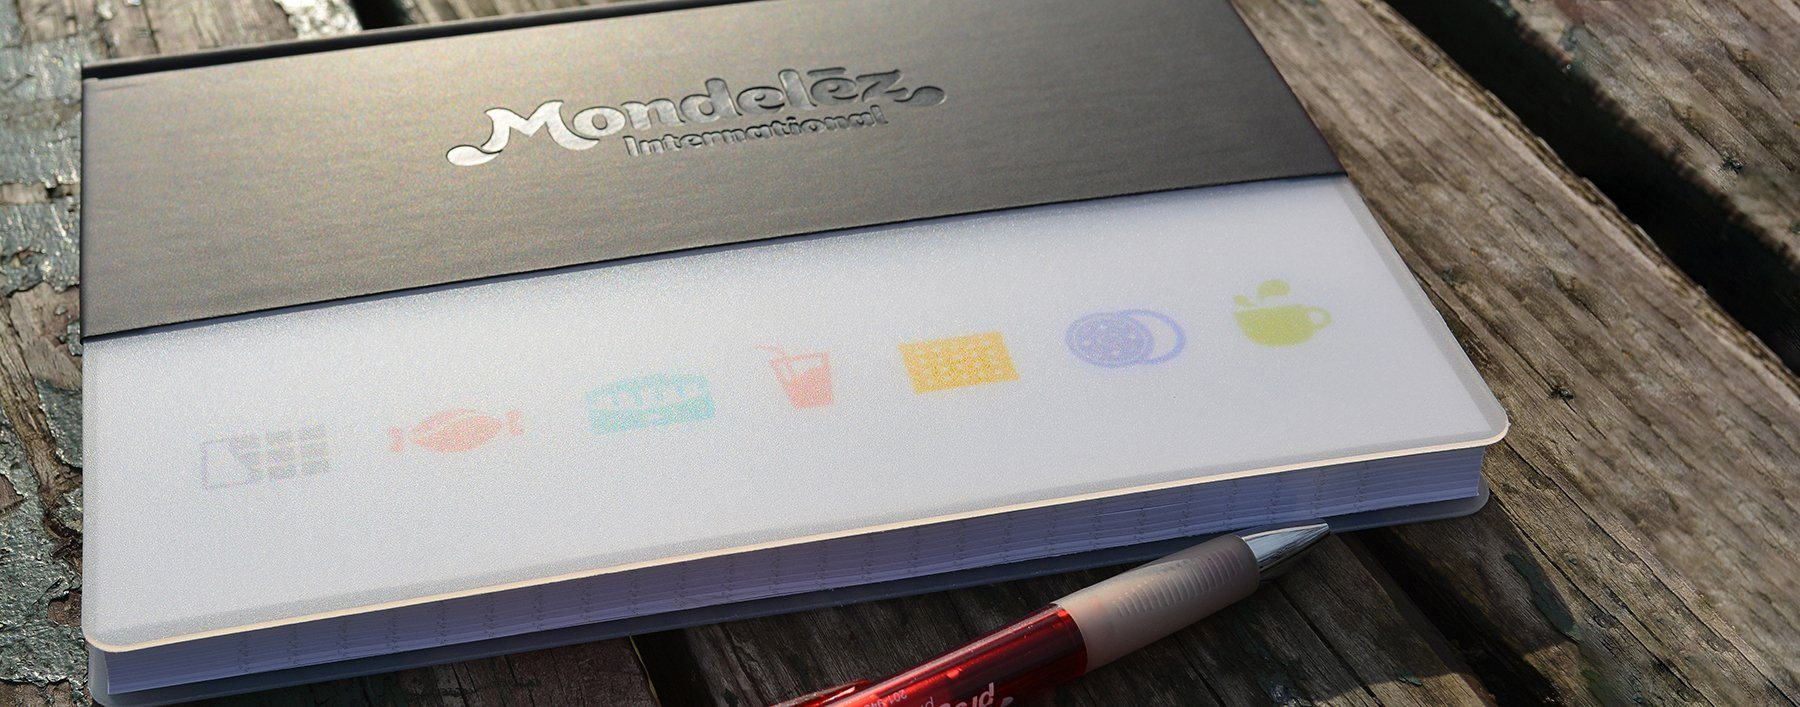 Mondelez Notebook